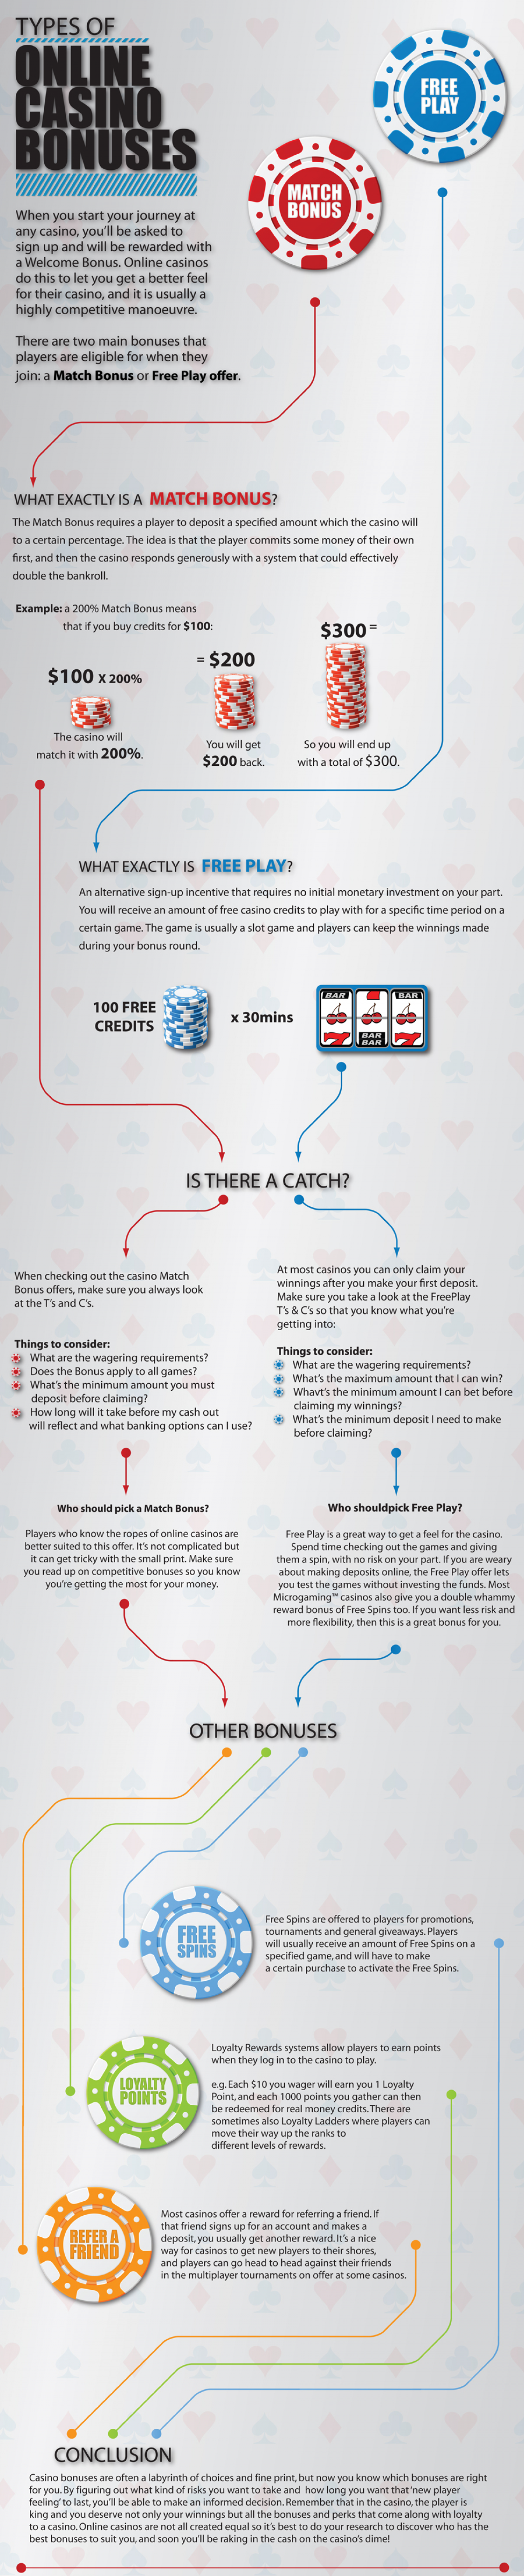 The types of casino bonuses Infographic